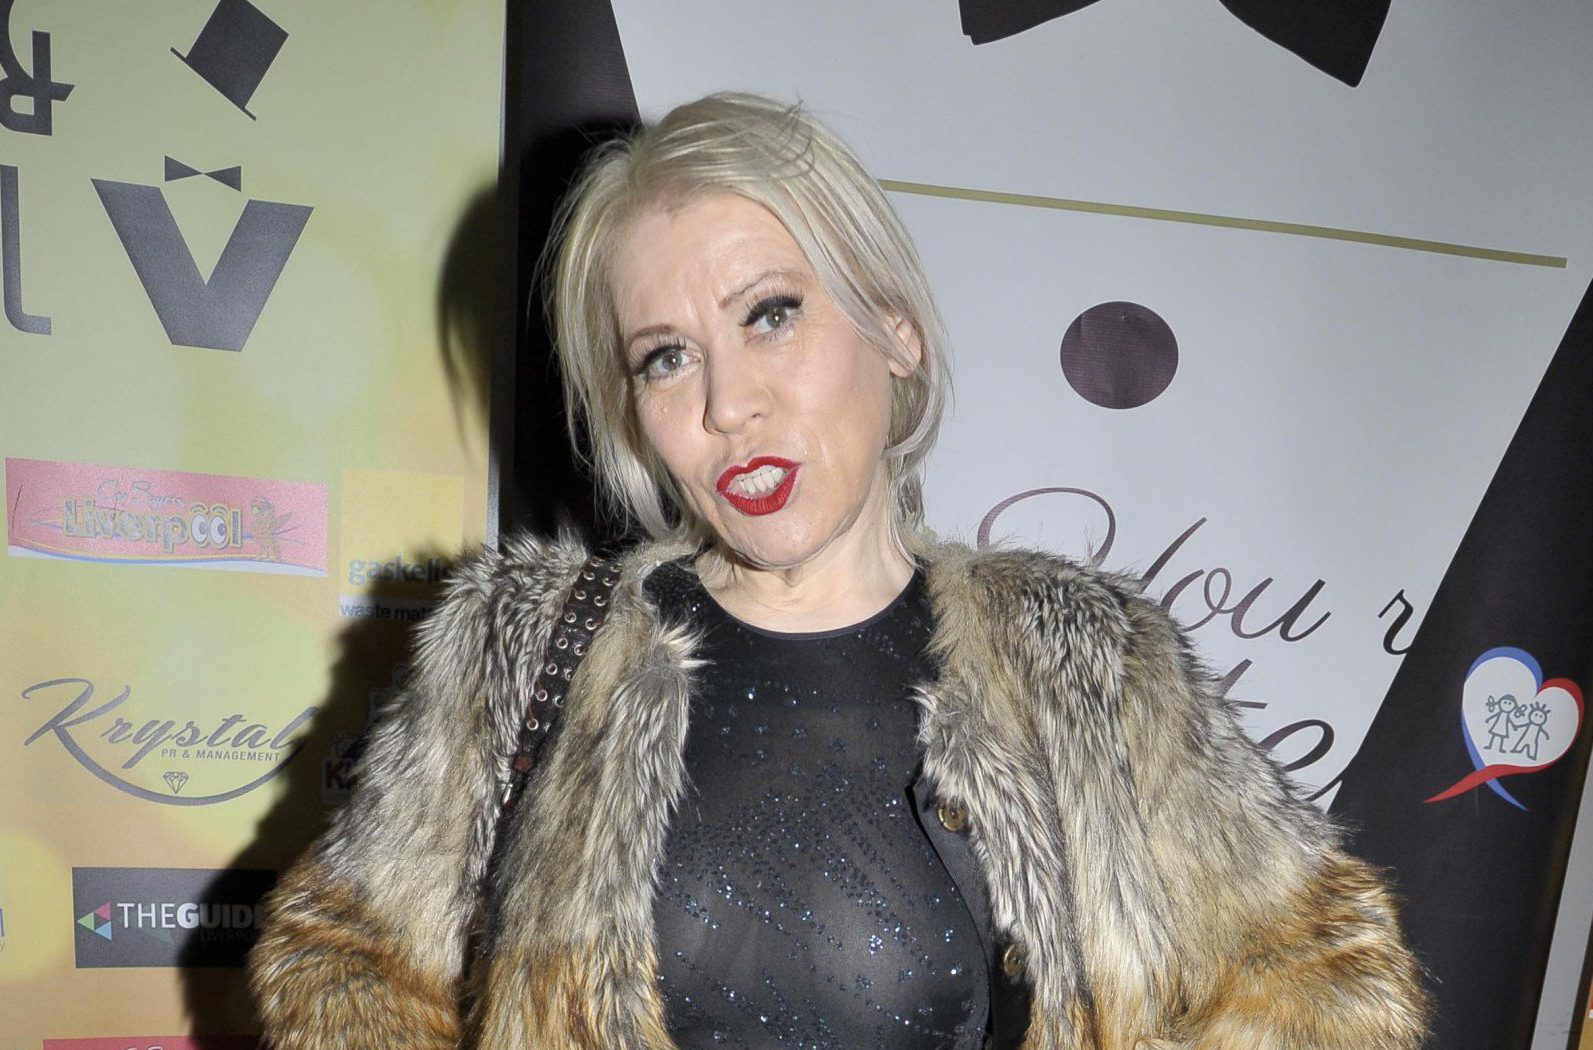 Tina Malone says Jon Venables should be 'wiped from the earth' for murder of James Bulger